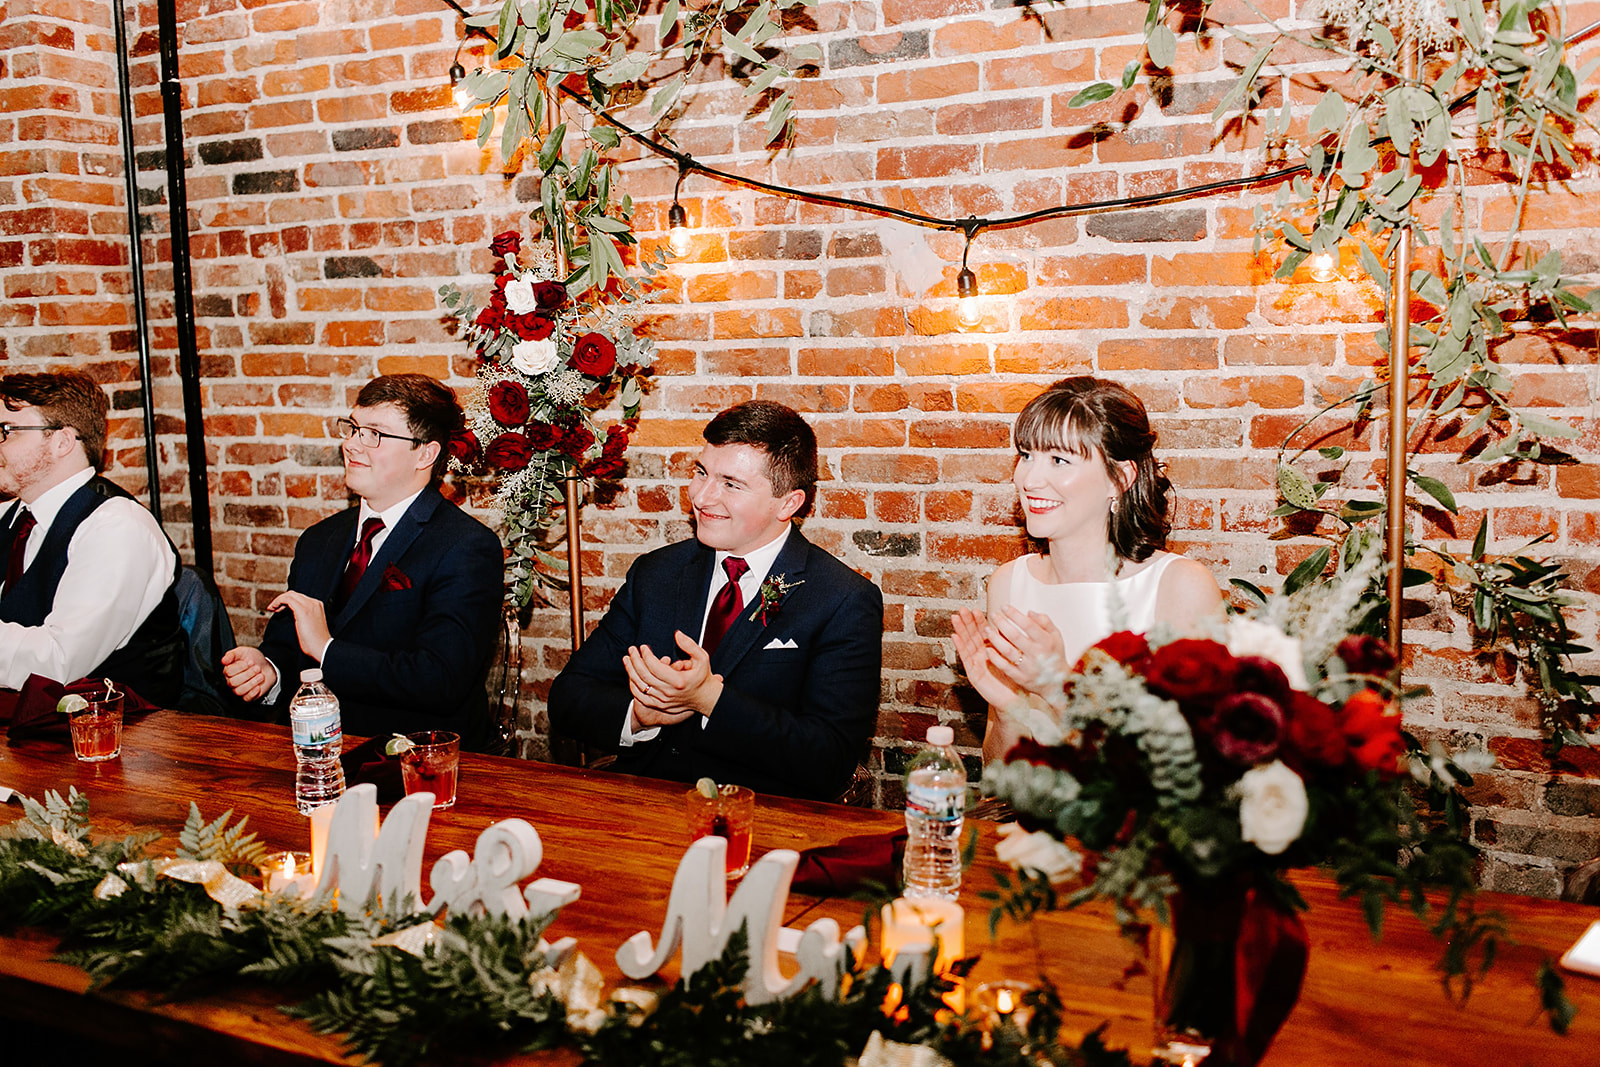 Emily and Davis_ Wedding at Vision Loft Indy in Indianapolis Indiana by Emily Elyse Wehner Photogrpahy LLC-774.jpg